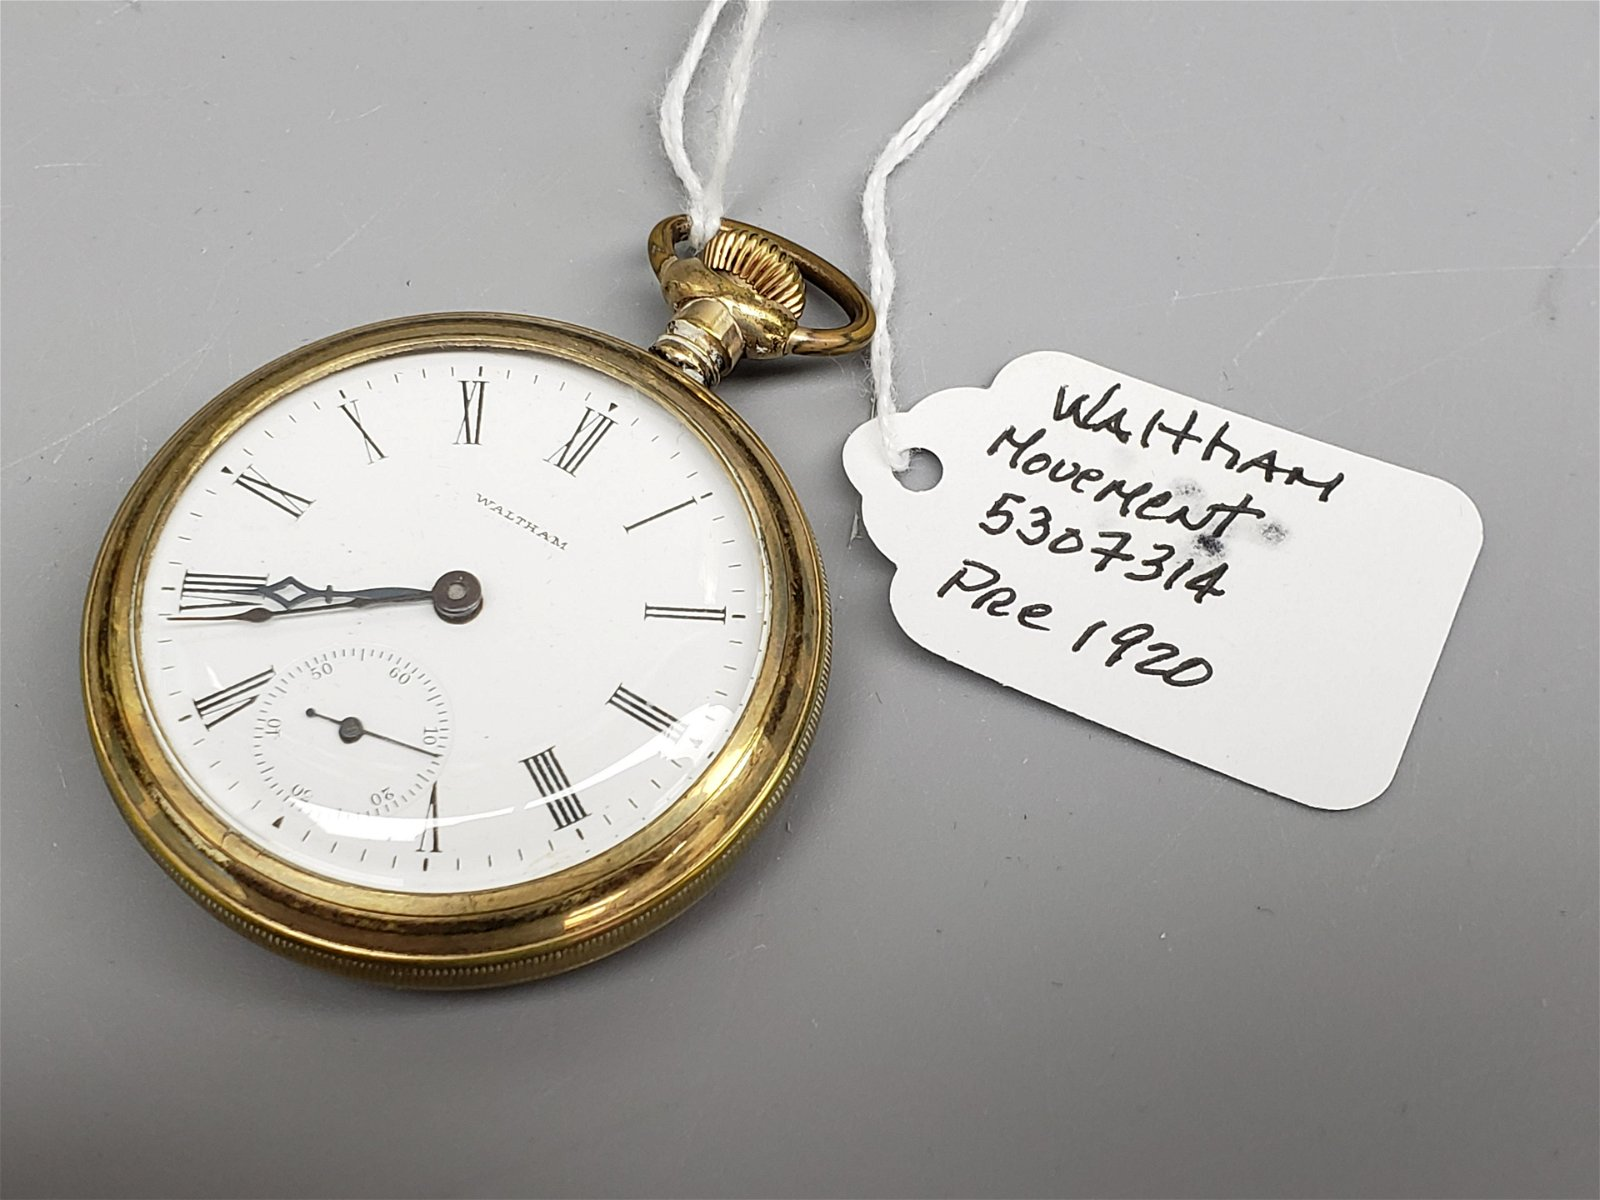 Waltham Pocket watch pre 1920